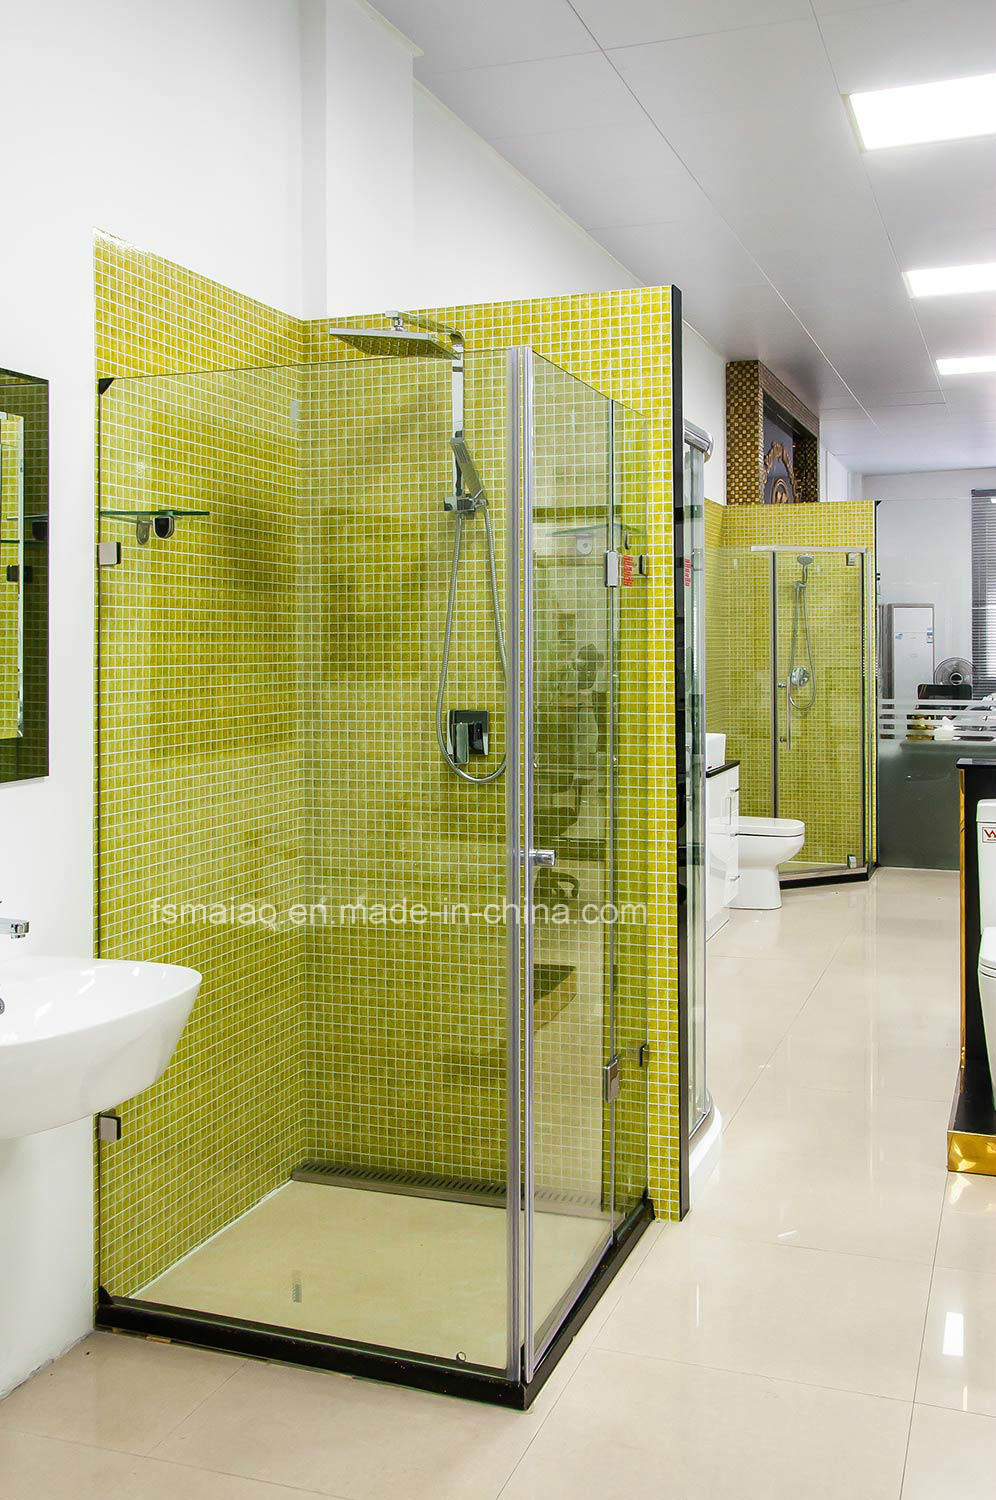 Australian Approved Supplier Frameless Shower Enclosure with Hinger (H3174)